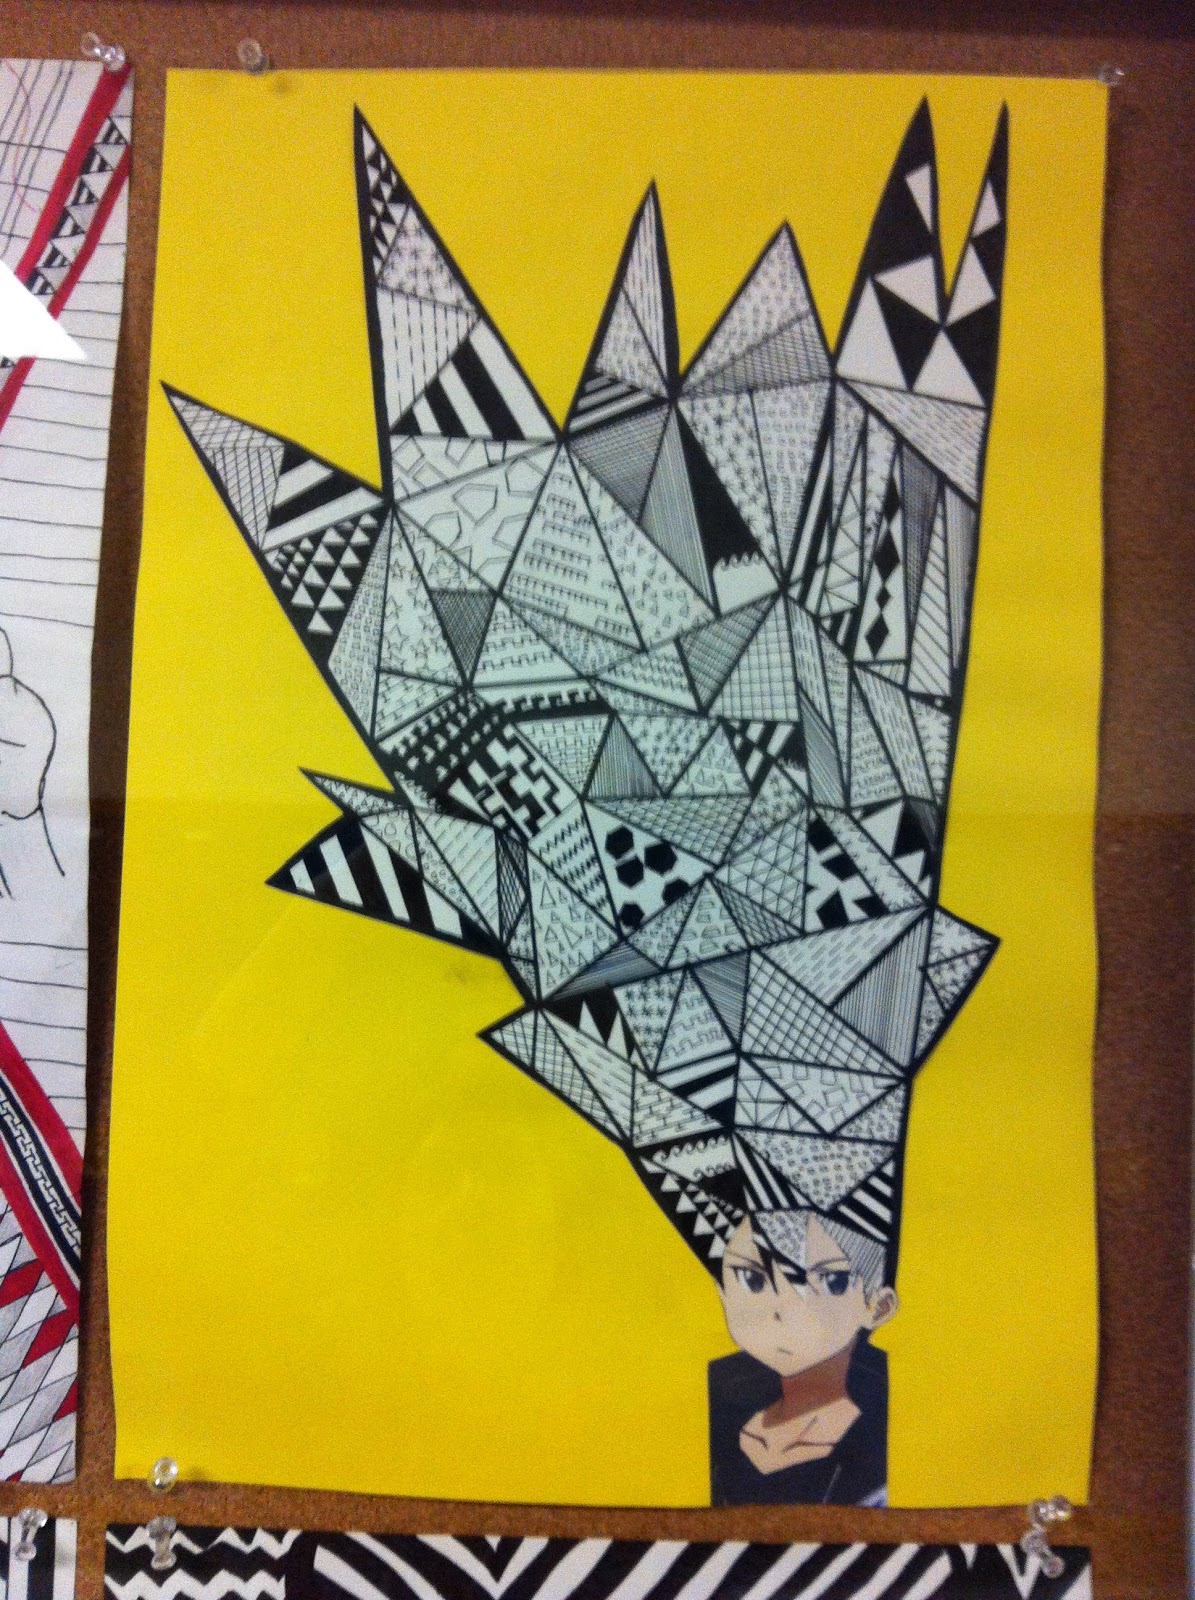 Line Art Projects Middle School : Project art a day lesson bad hair line and shape